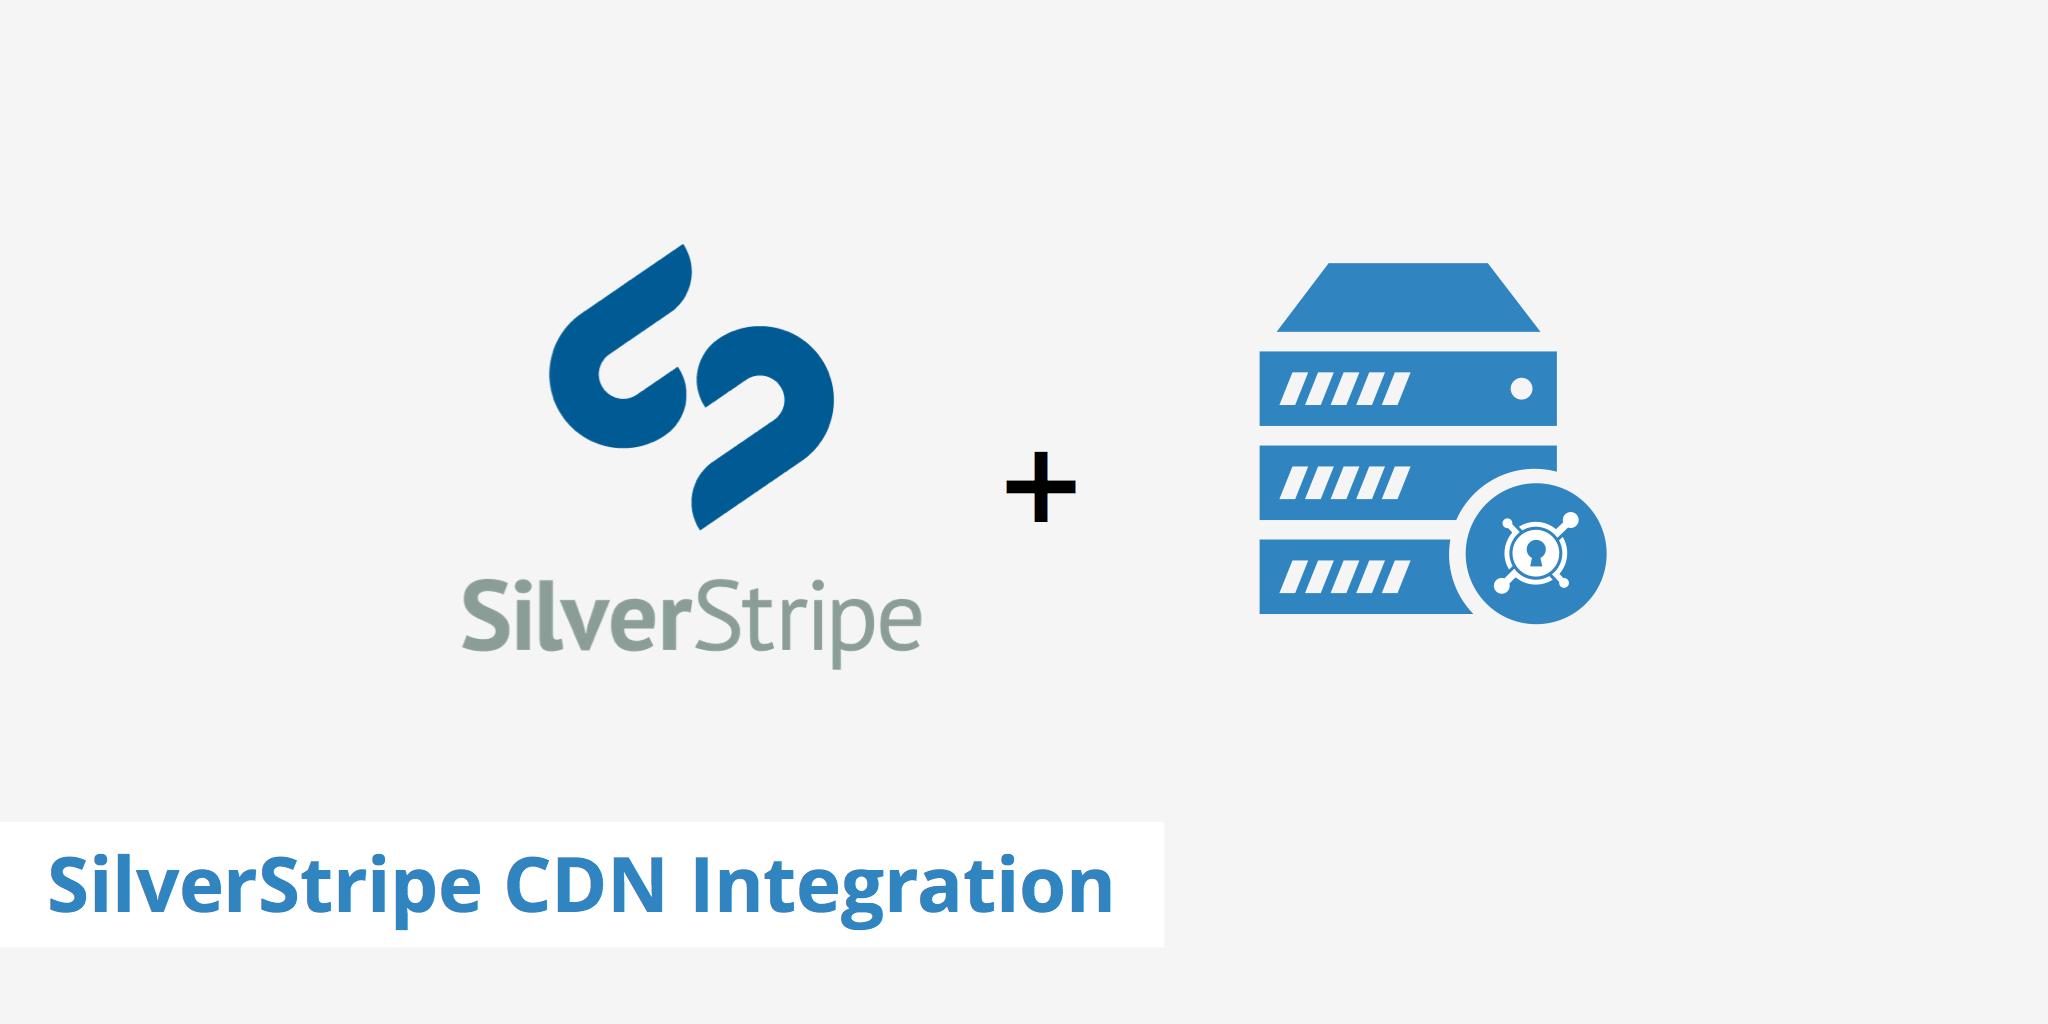 SilverStripe CDN Integration